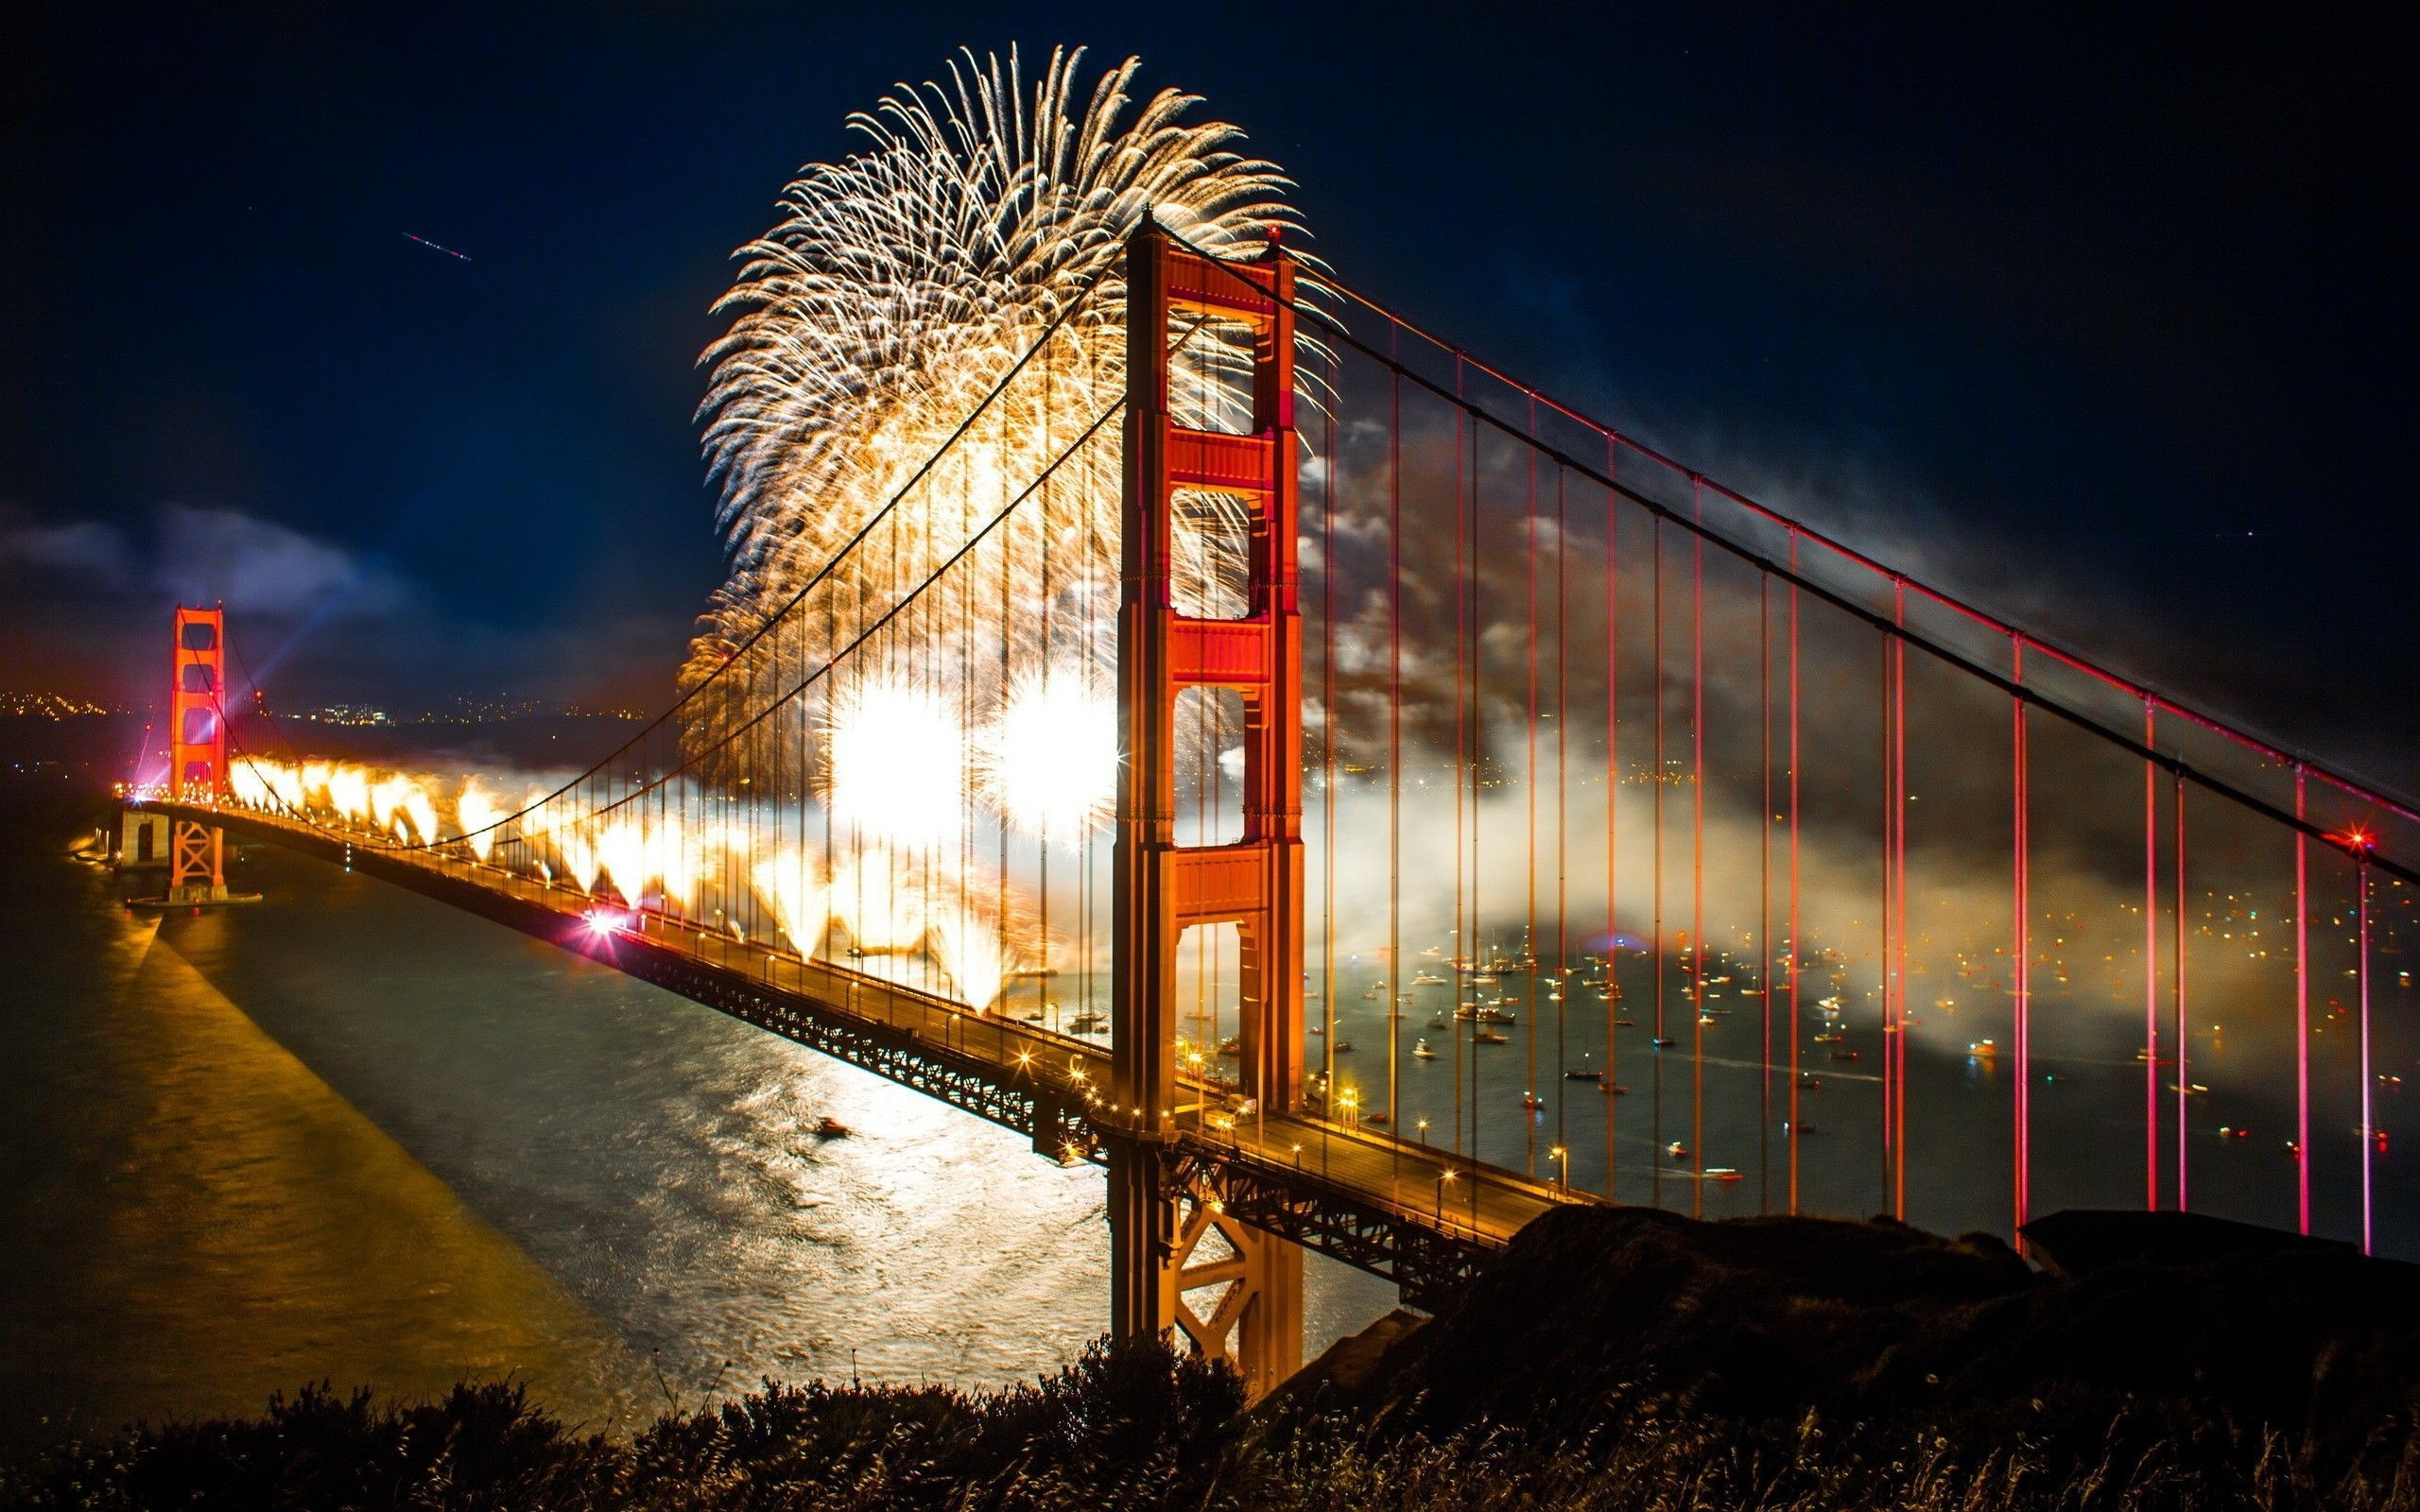 2560x1600 Golden Gate Bridge Night Wallpapers High Quality Resolution